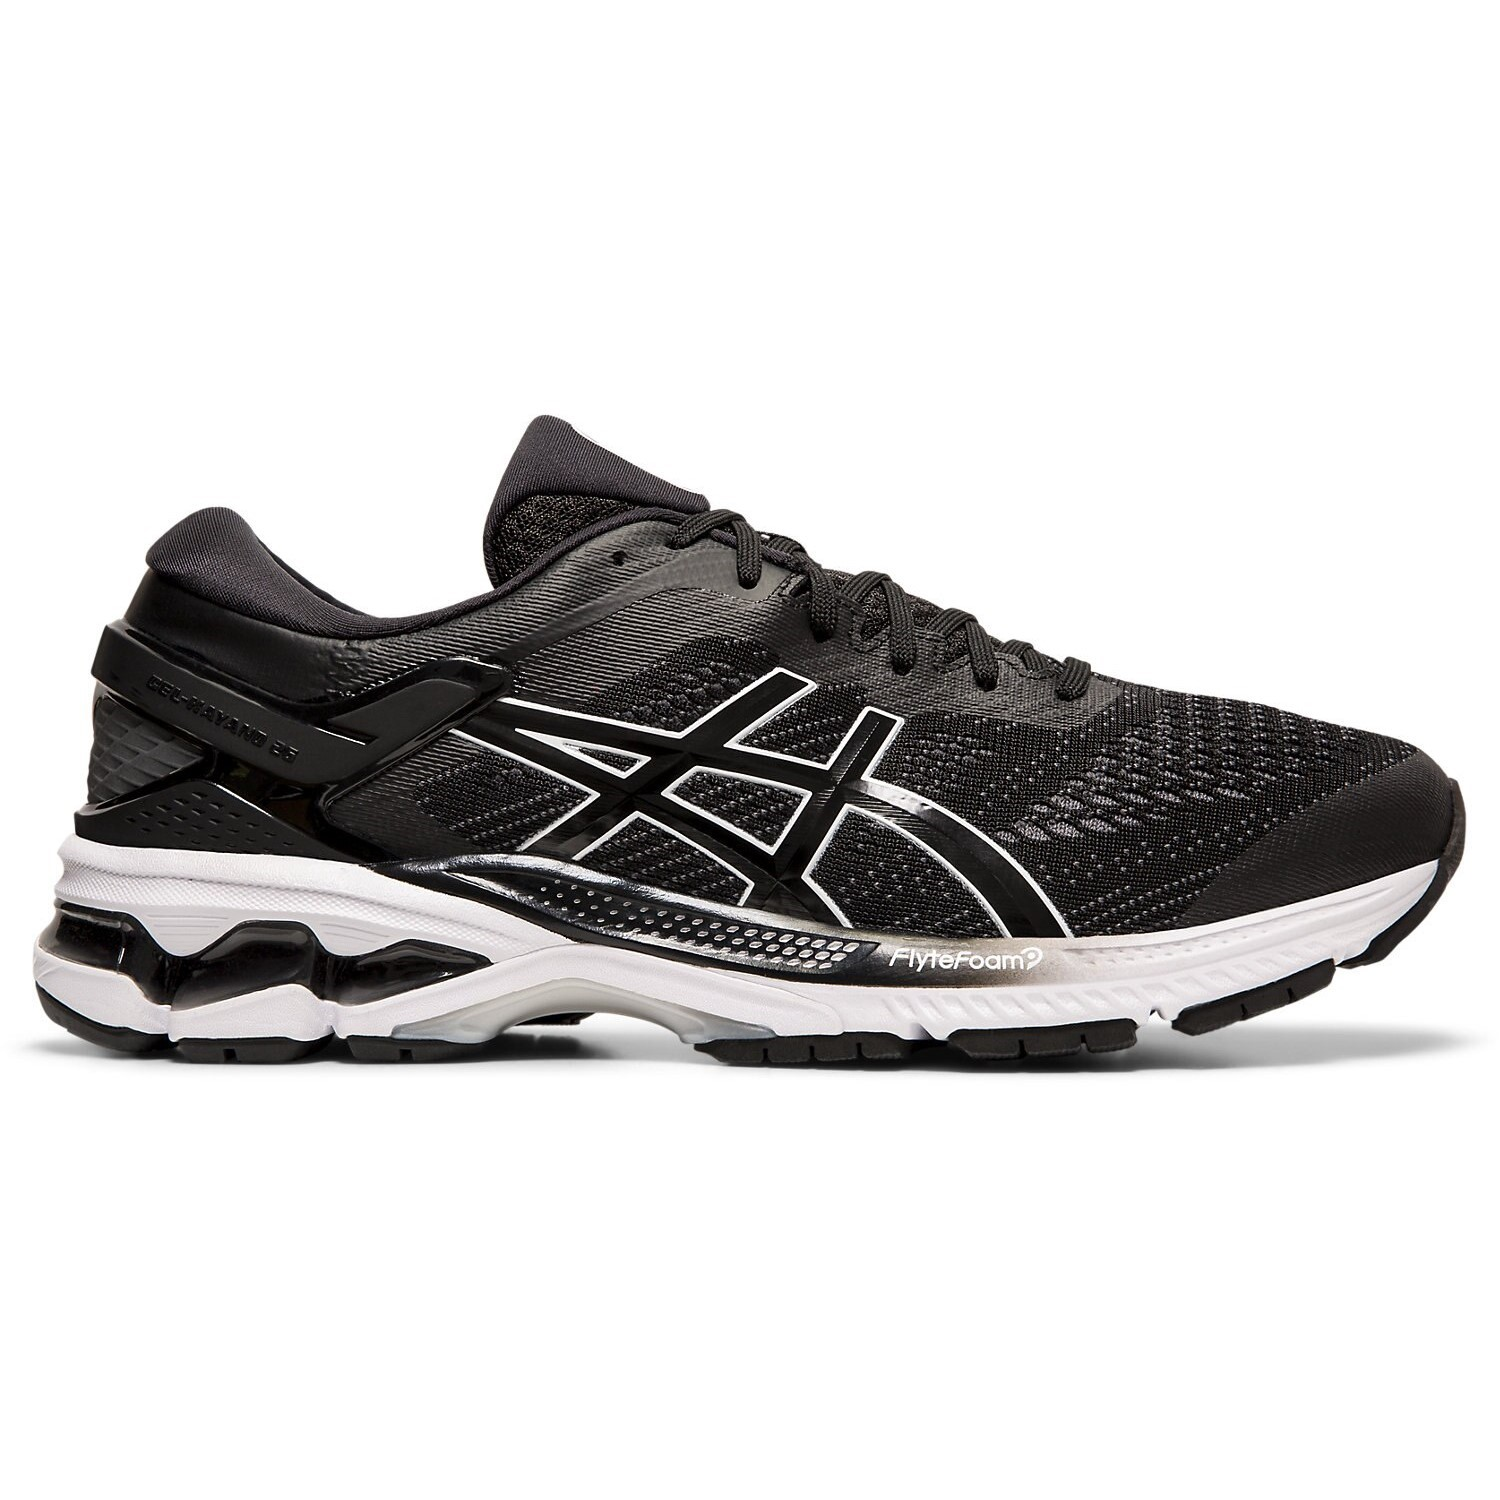 128fca2ba61 Asics Gel Kayano 26 - Mens Running Shoes + Free Lightfeet Socks -  Black/White